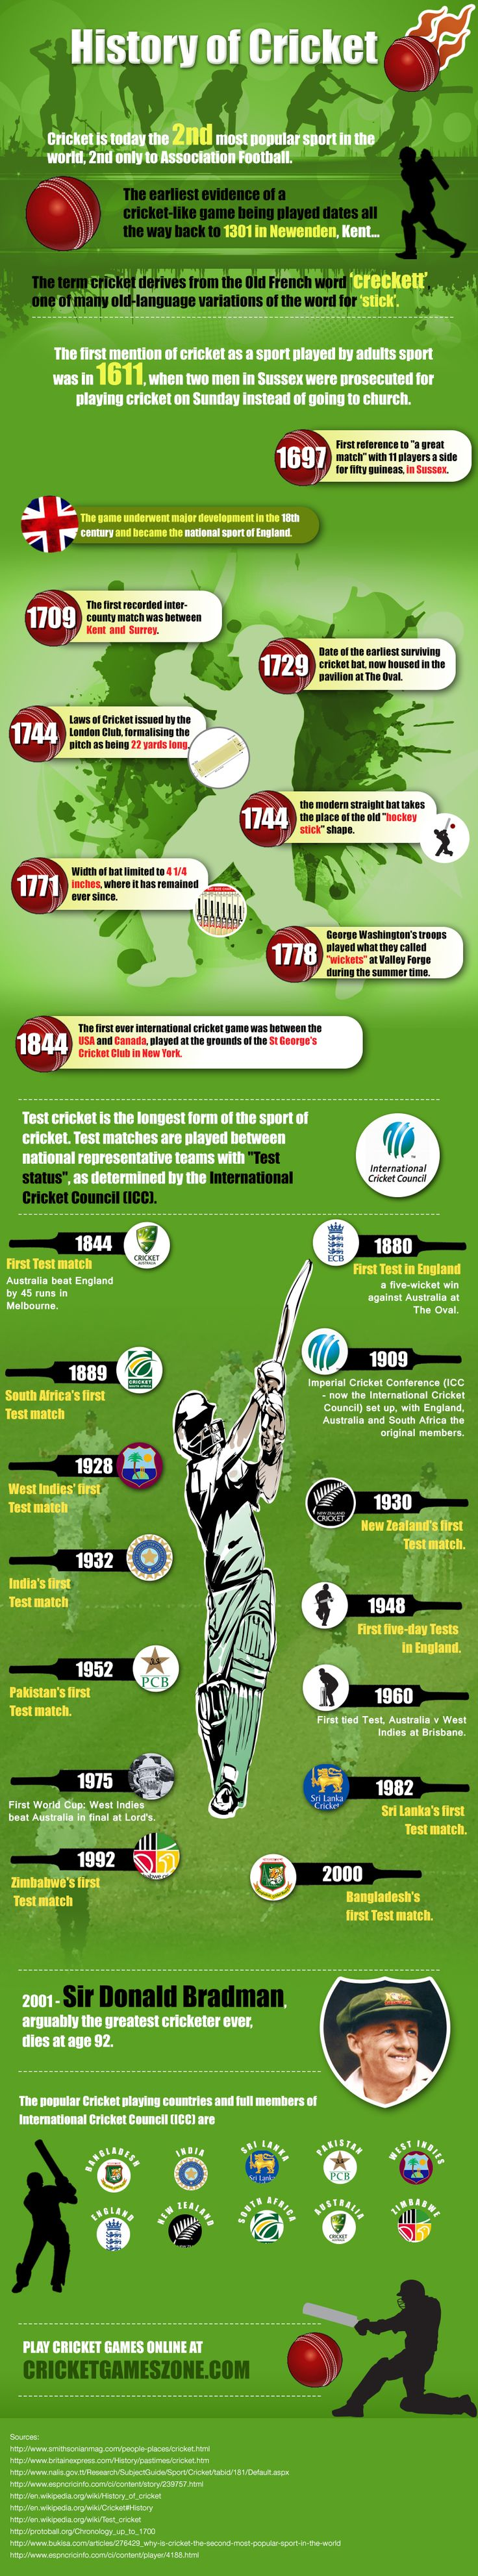 http://cricketgameszone.com/blog/history-of-cricket/  (Infographic) History of Cricket